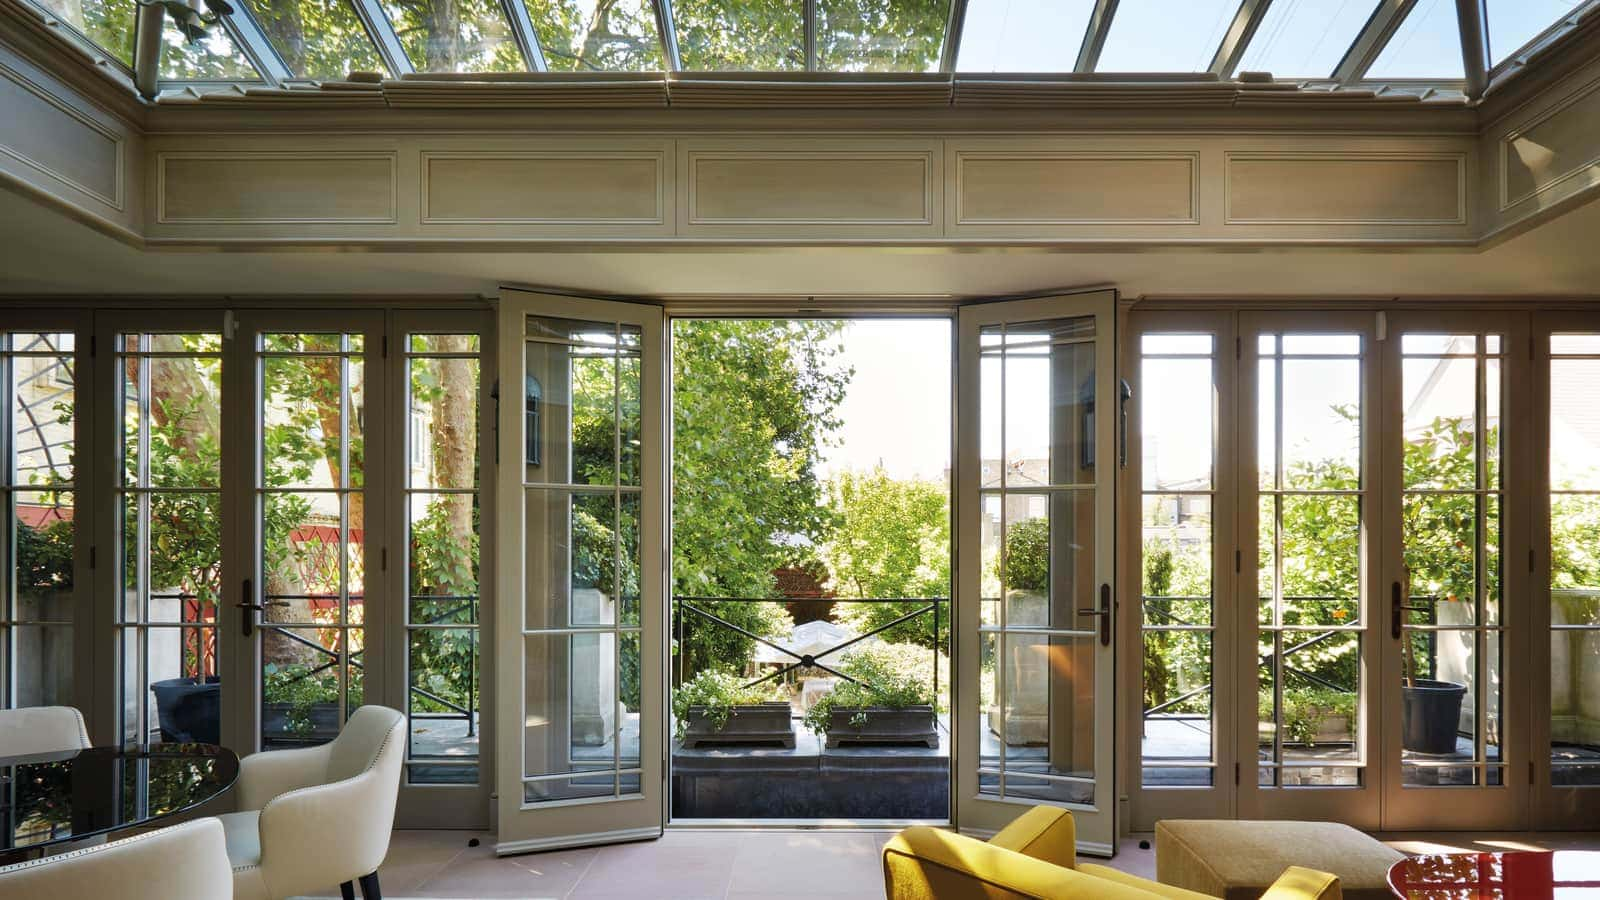 French doors opening on to a balcony offering uninterrupted views of the expansive garden below